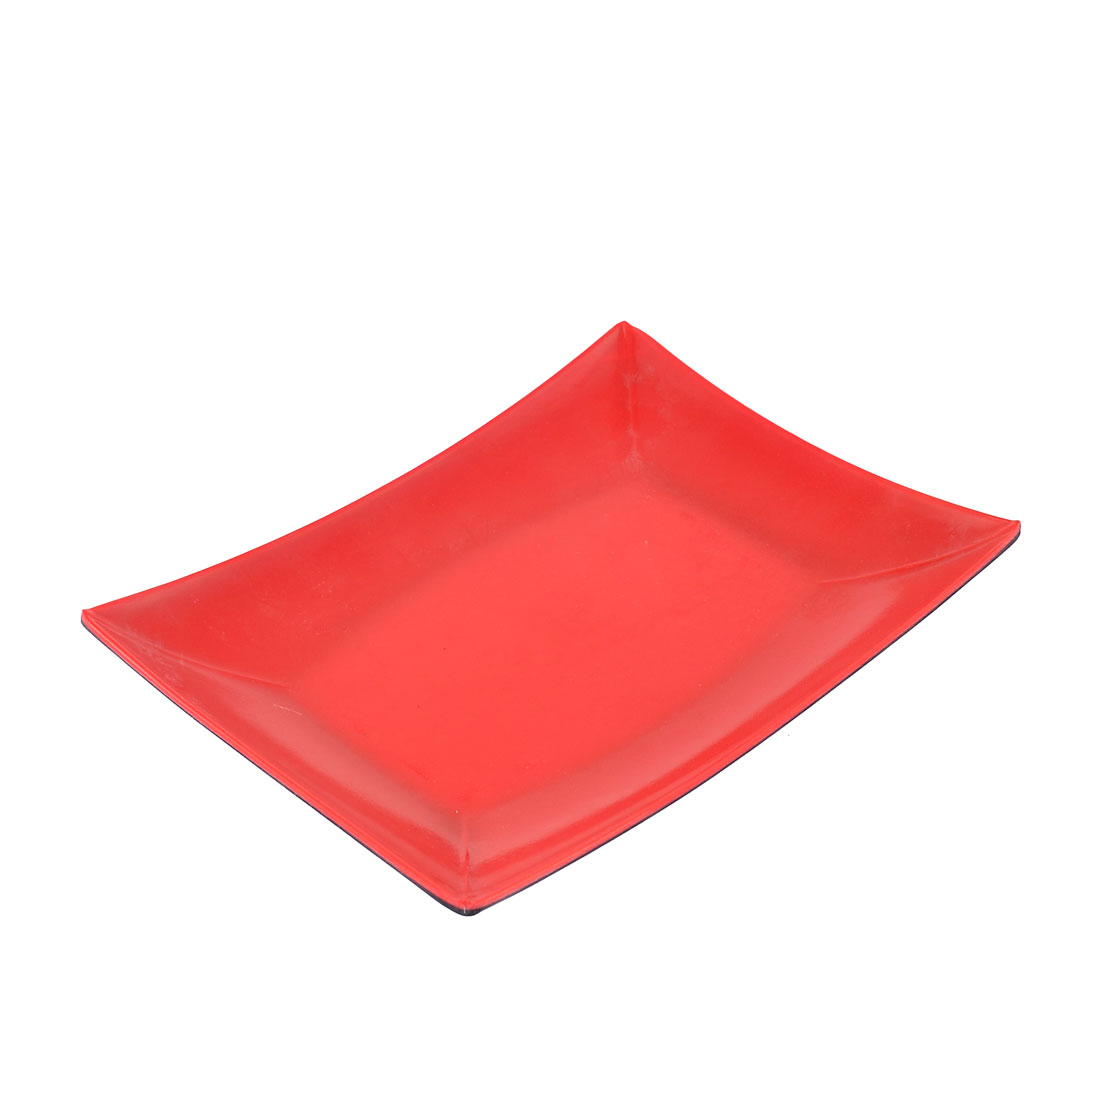 Kitchen Plastic Rectangle Shaped Food Appetizer Dish Plate Tray Red Black 8""